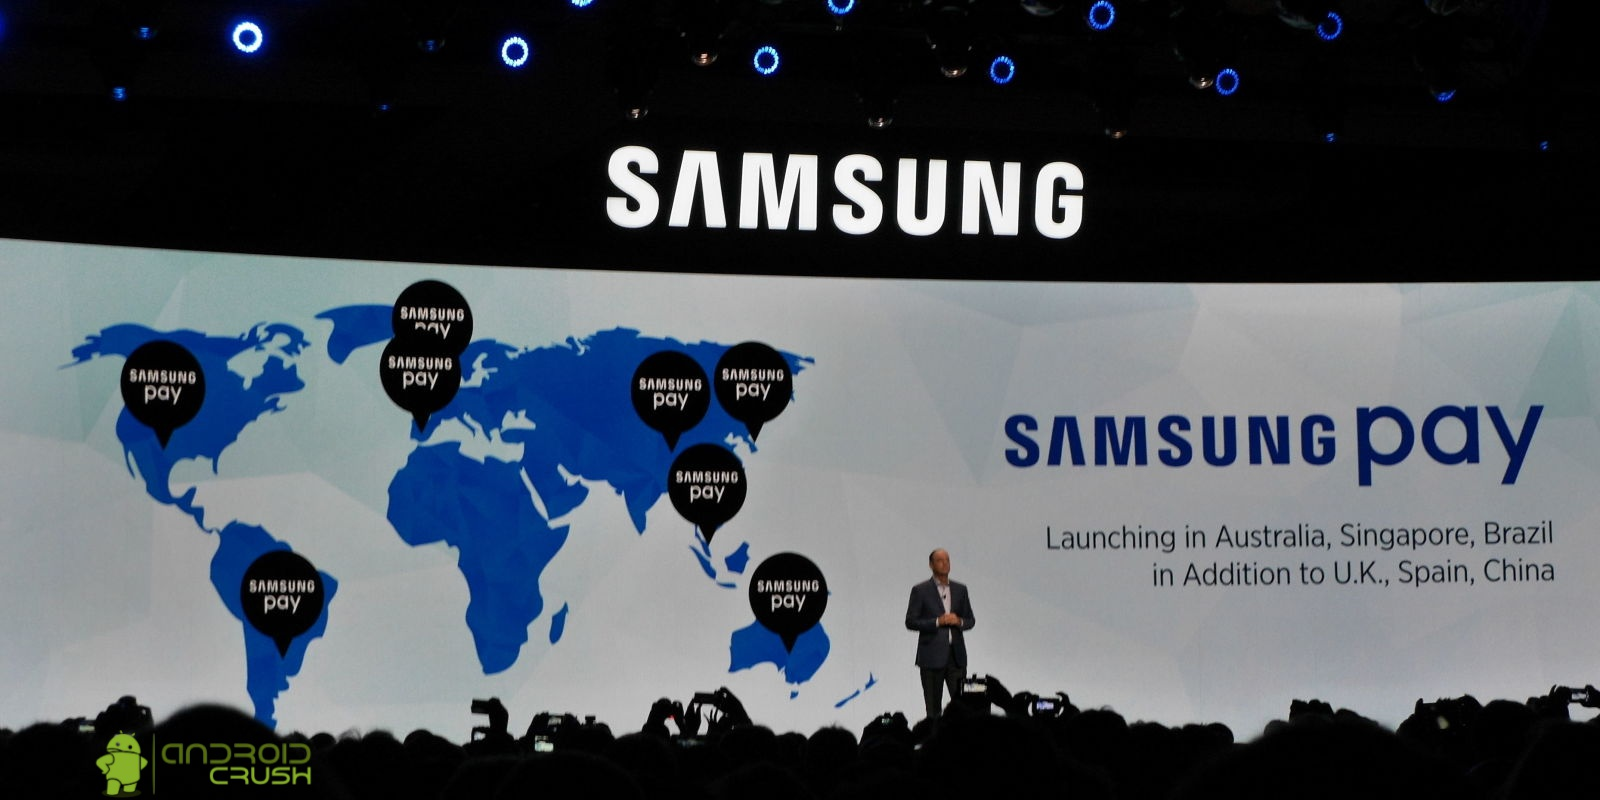 Samsung Pay Will Come to Spain in 2016